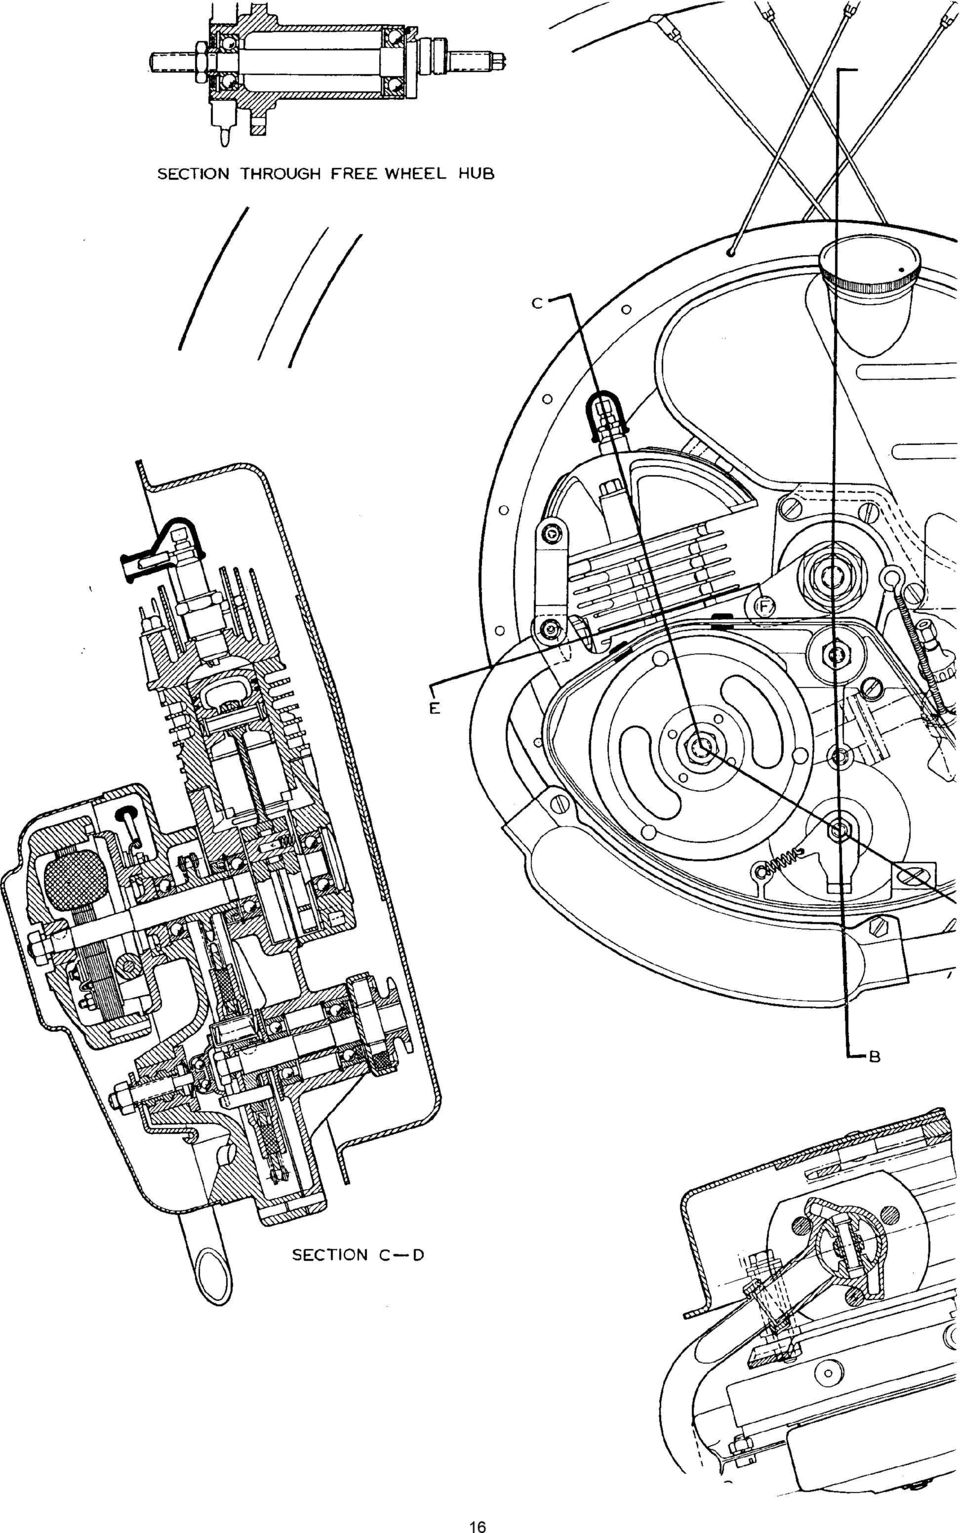 Cyclemaster Workshop Manual Please Quote The Wheel Number In All Hub Diagram 16